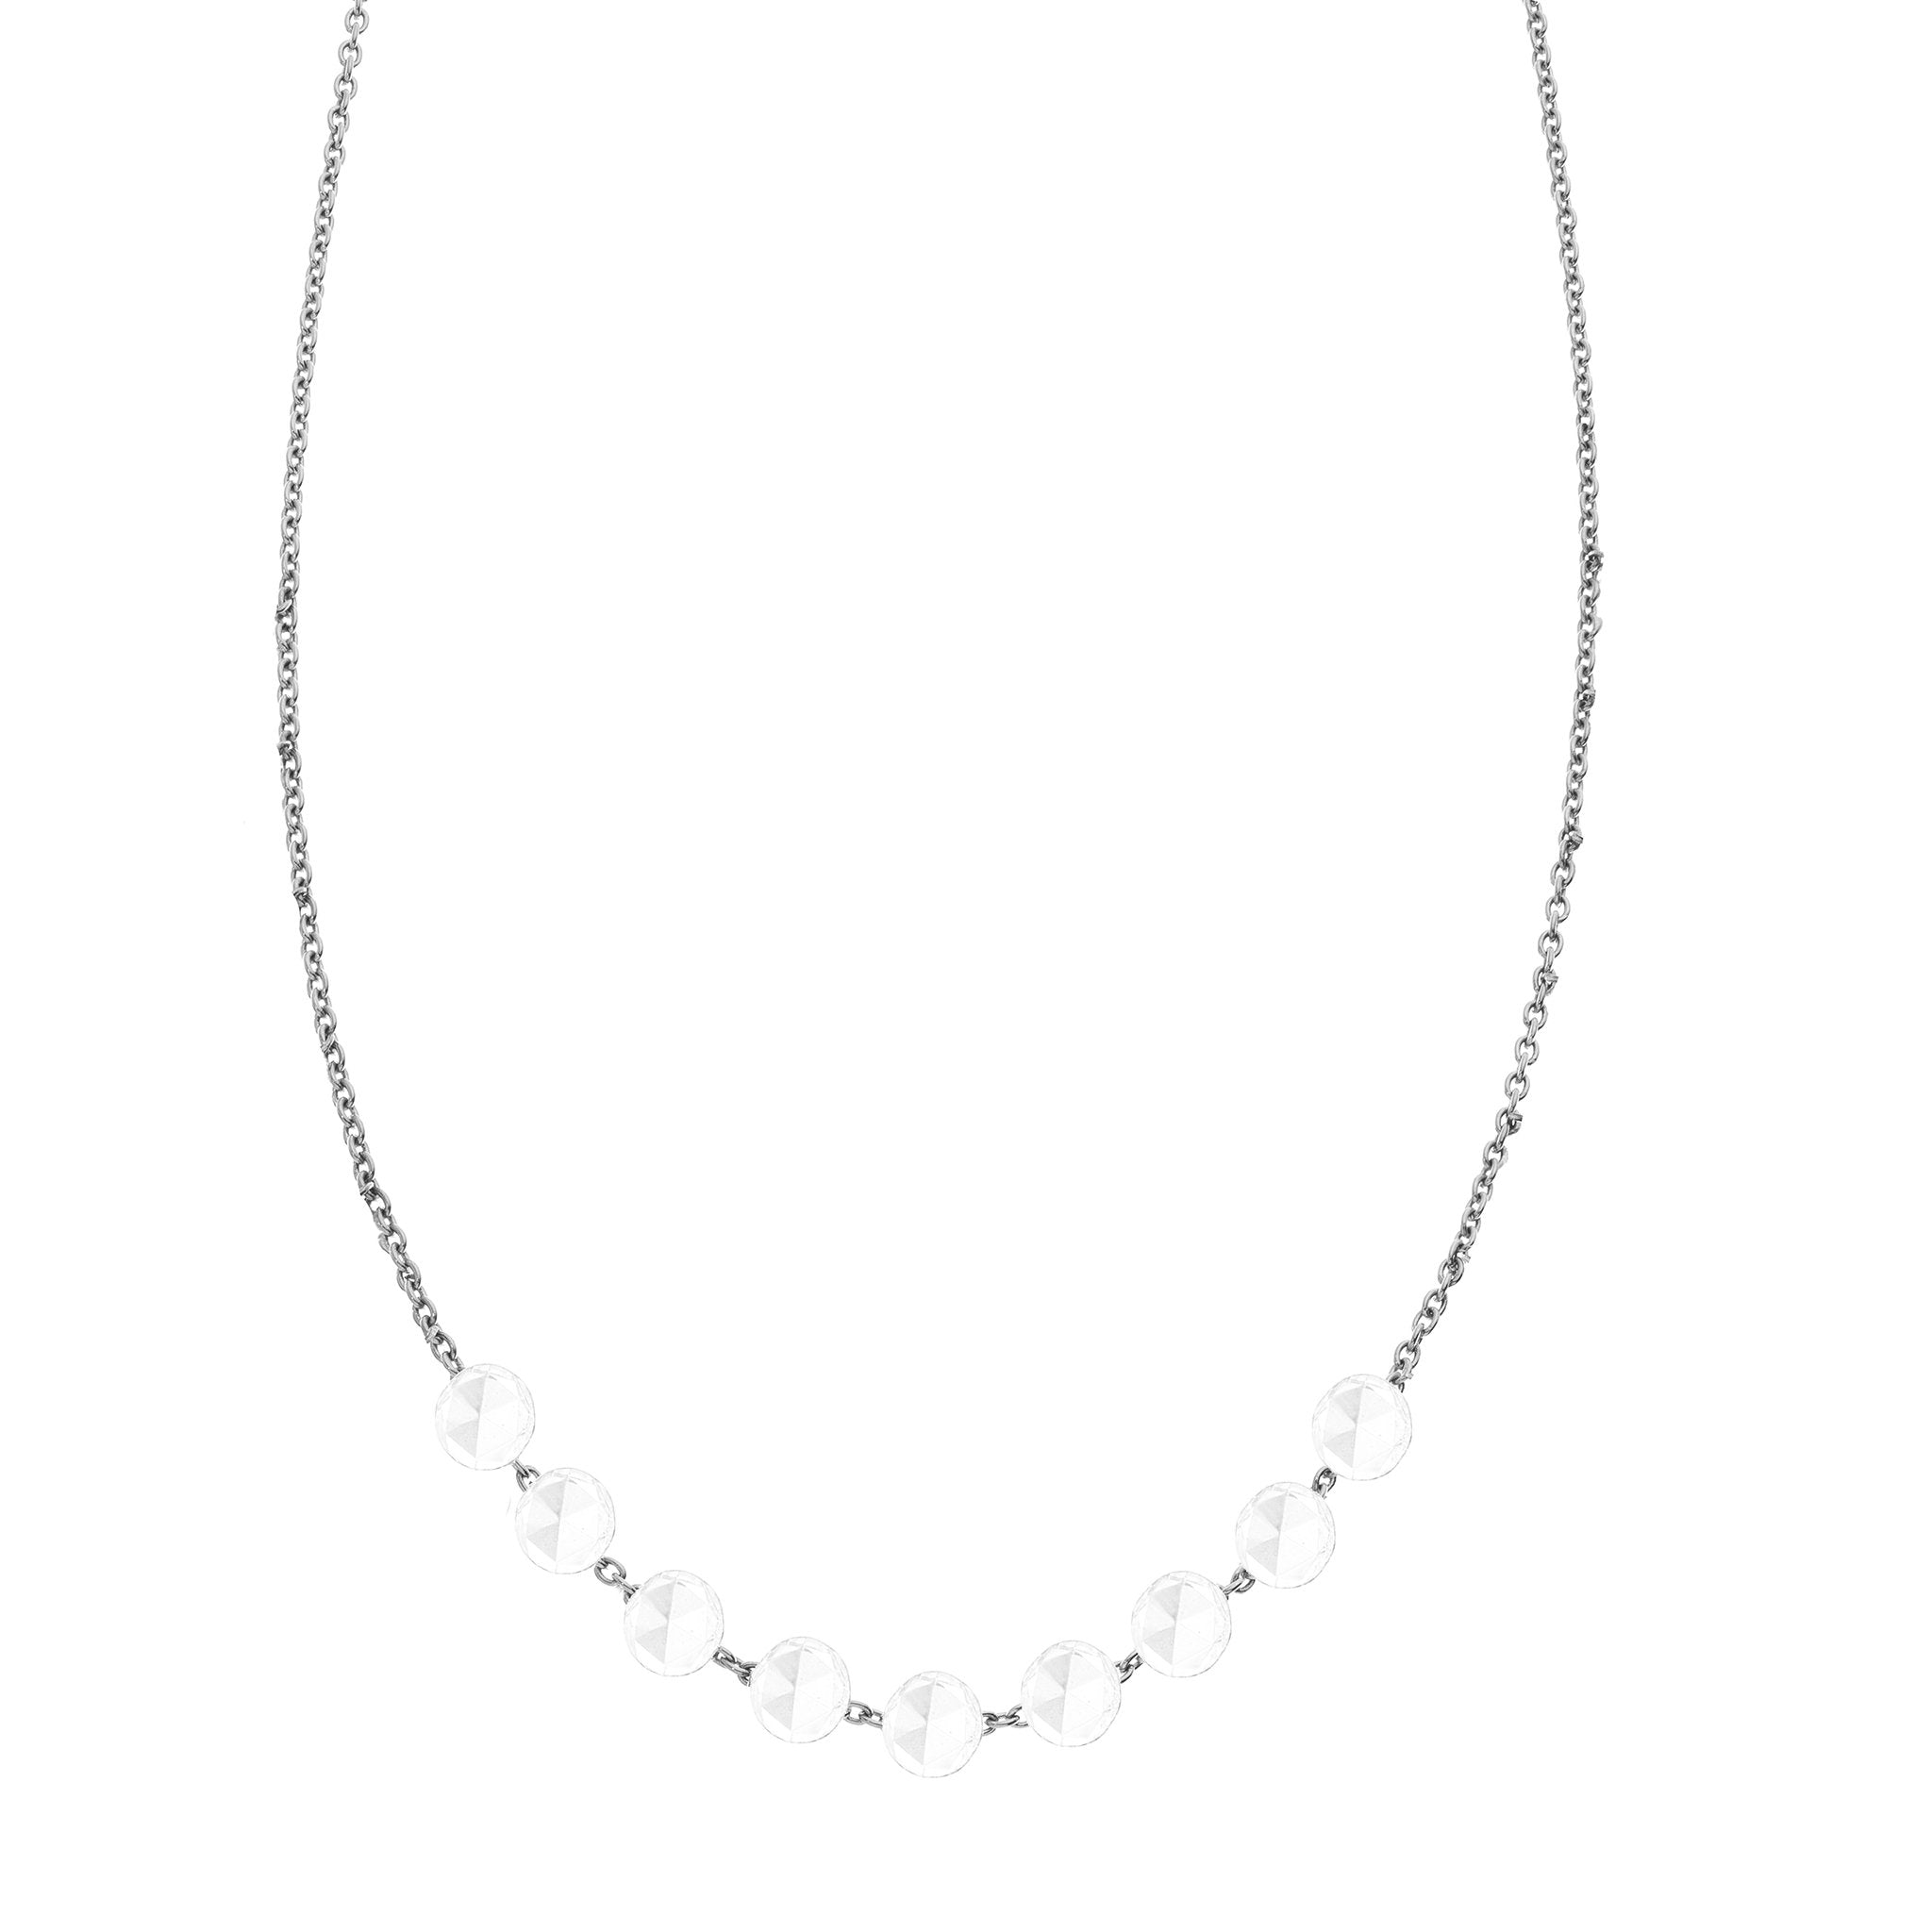 The Cien 9 Stone Necklace